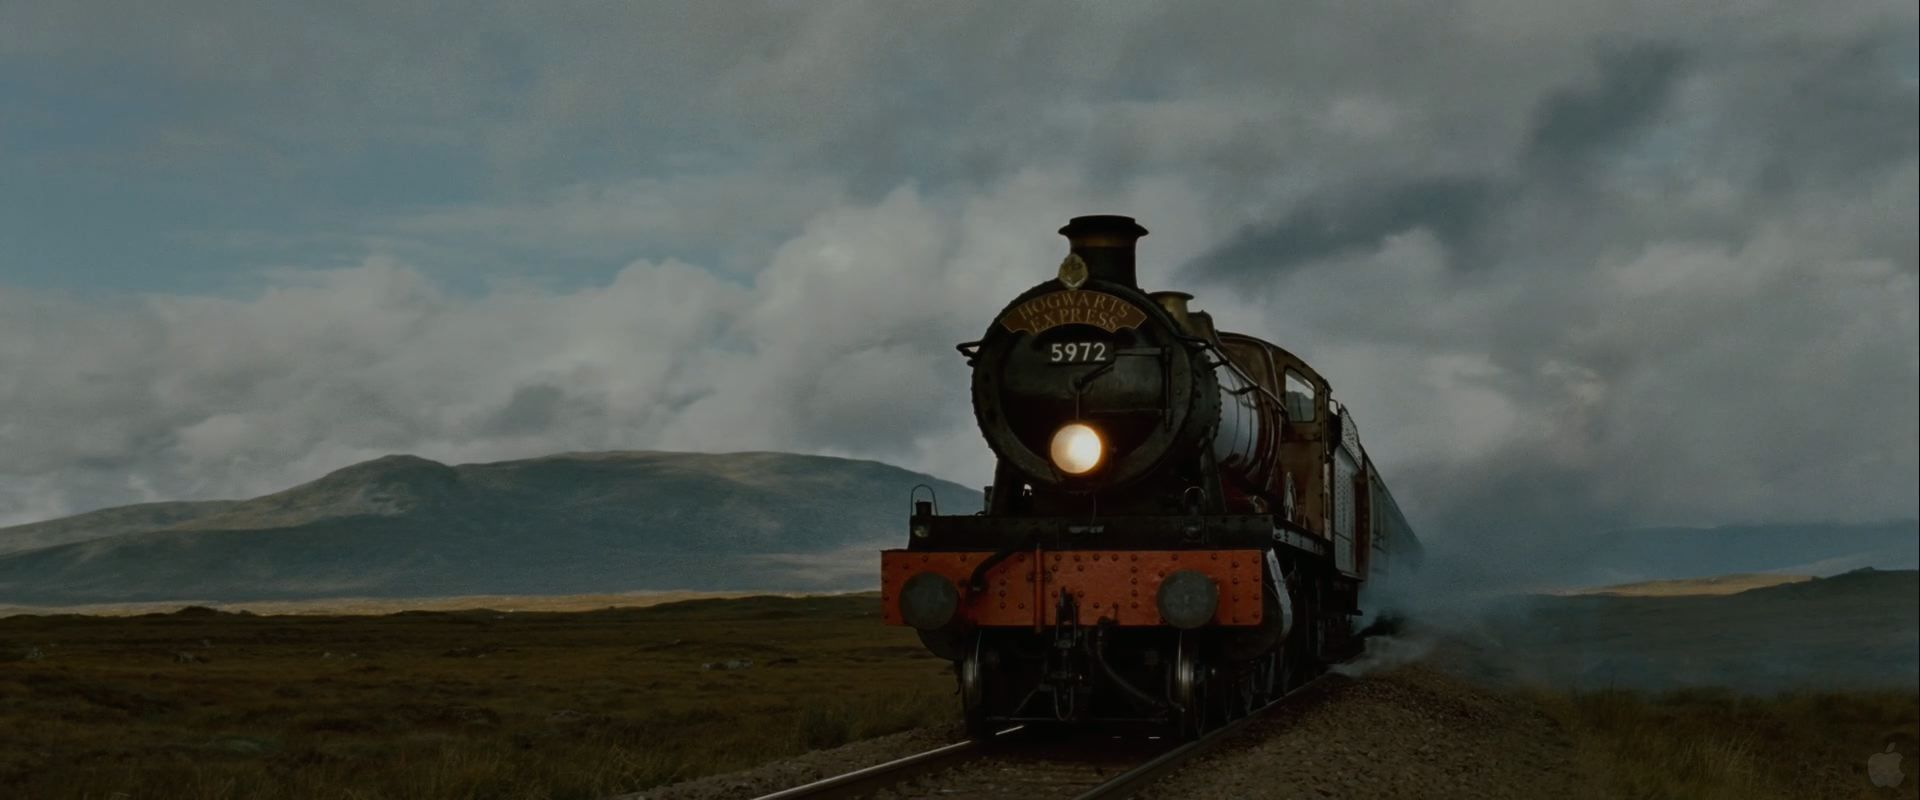 1920x800 Hogwarts Express Train from Harry Potter and the Deathly Hallows ...